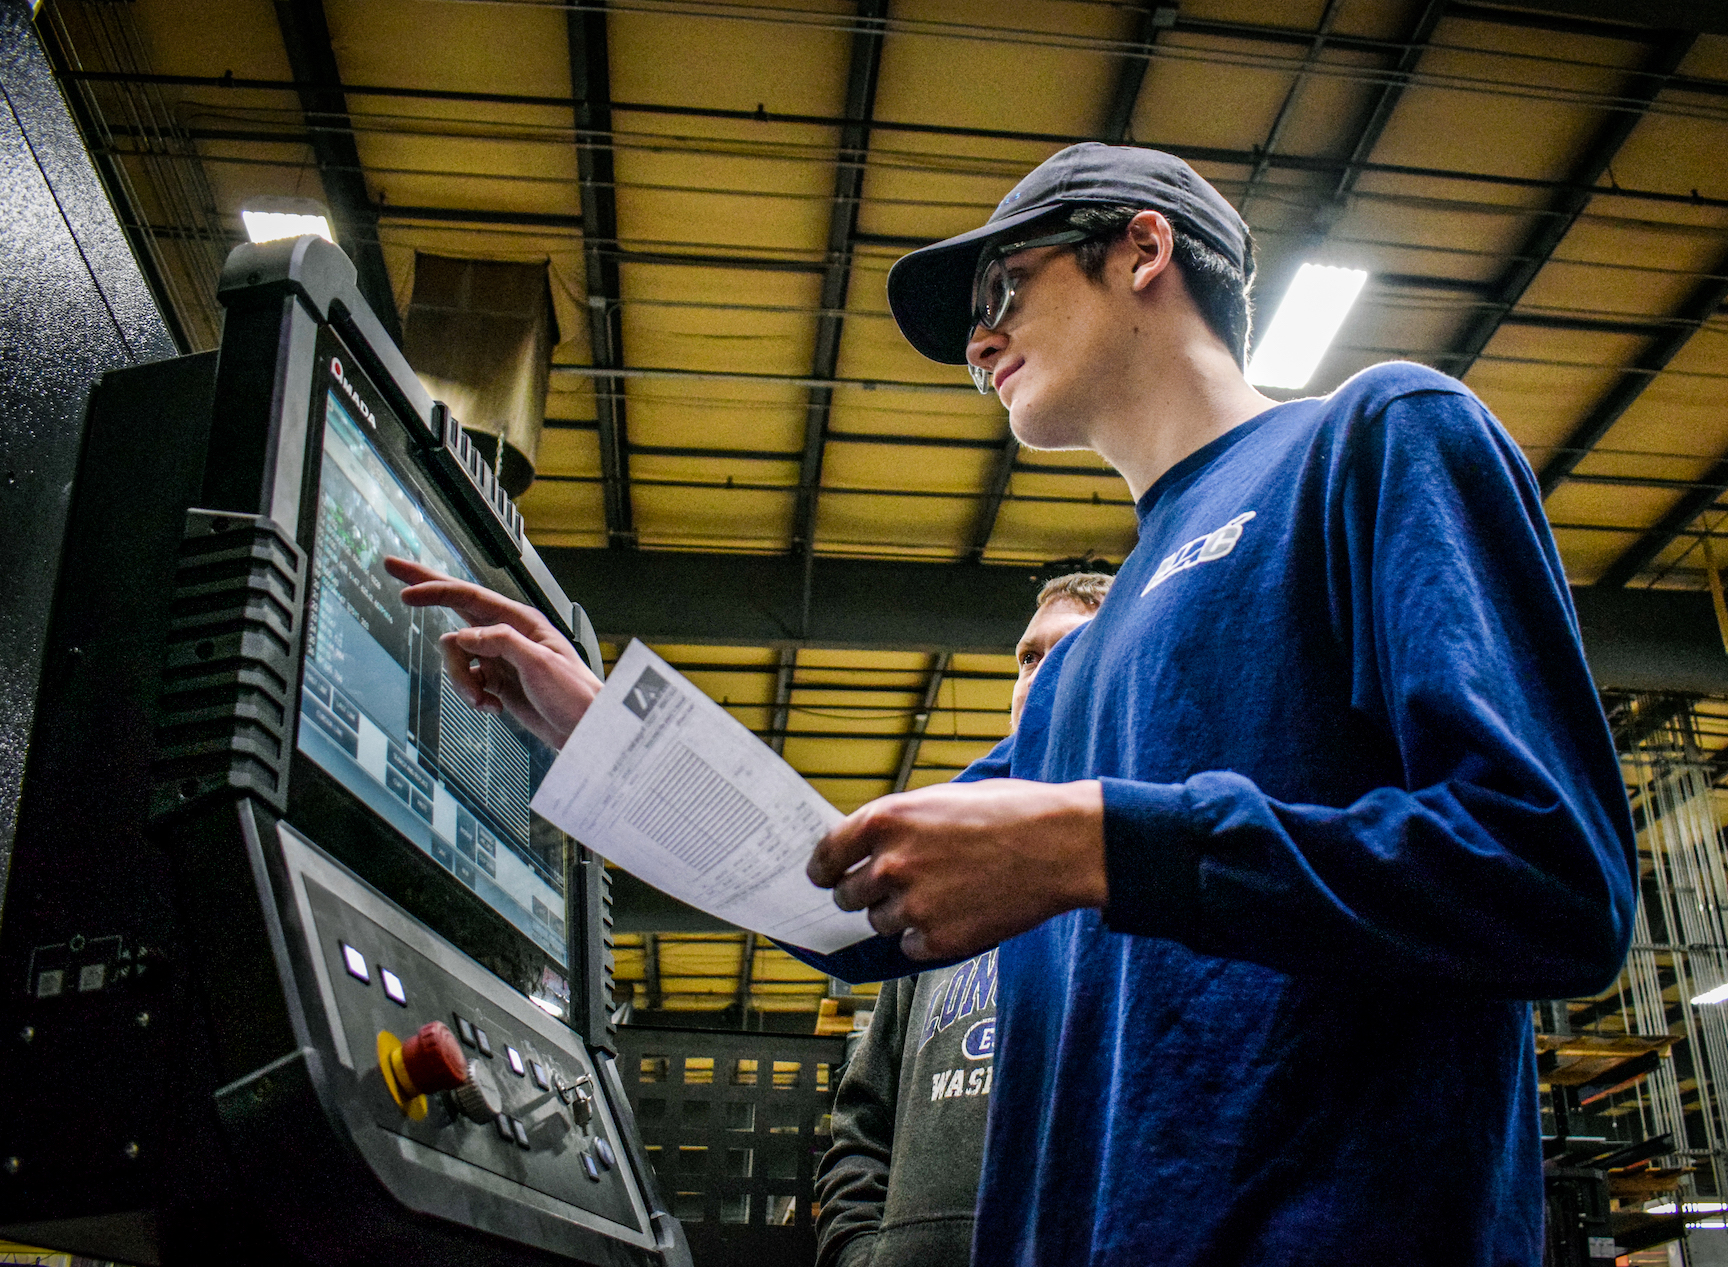 Students at West Valley School District No. 208 in Washington can graduate with industry-recognized journeyman's credentials in manufacturing.